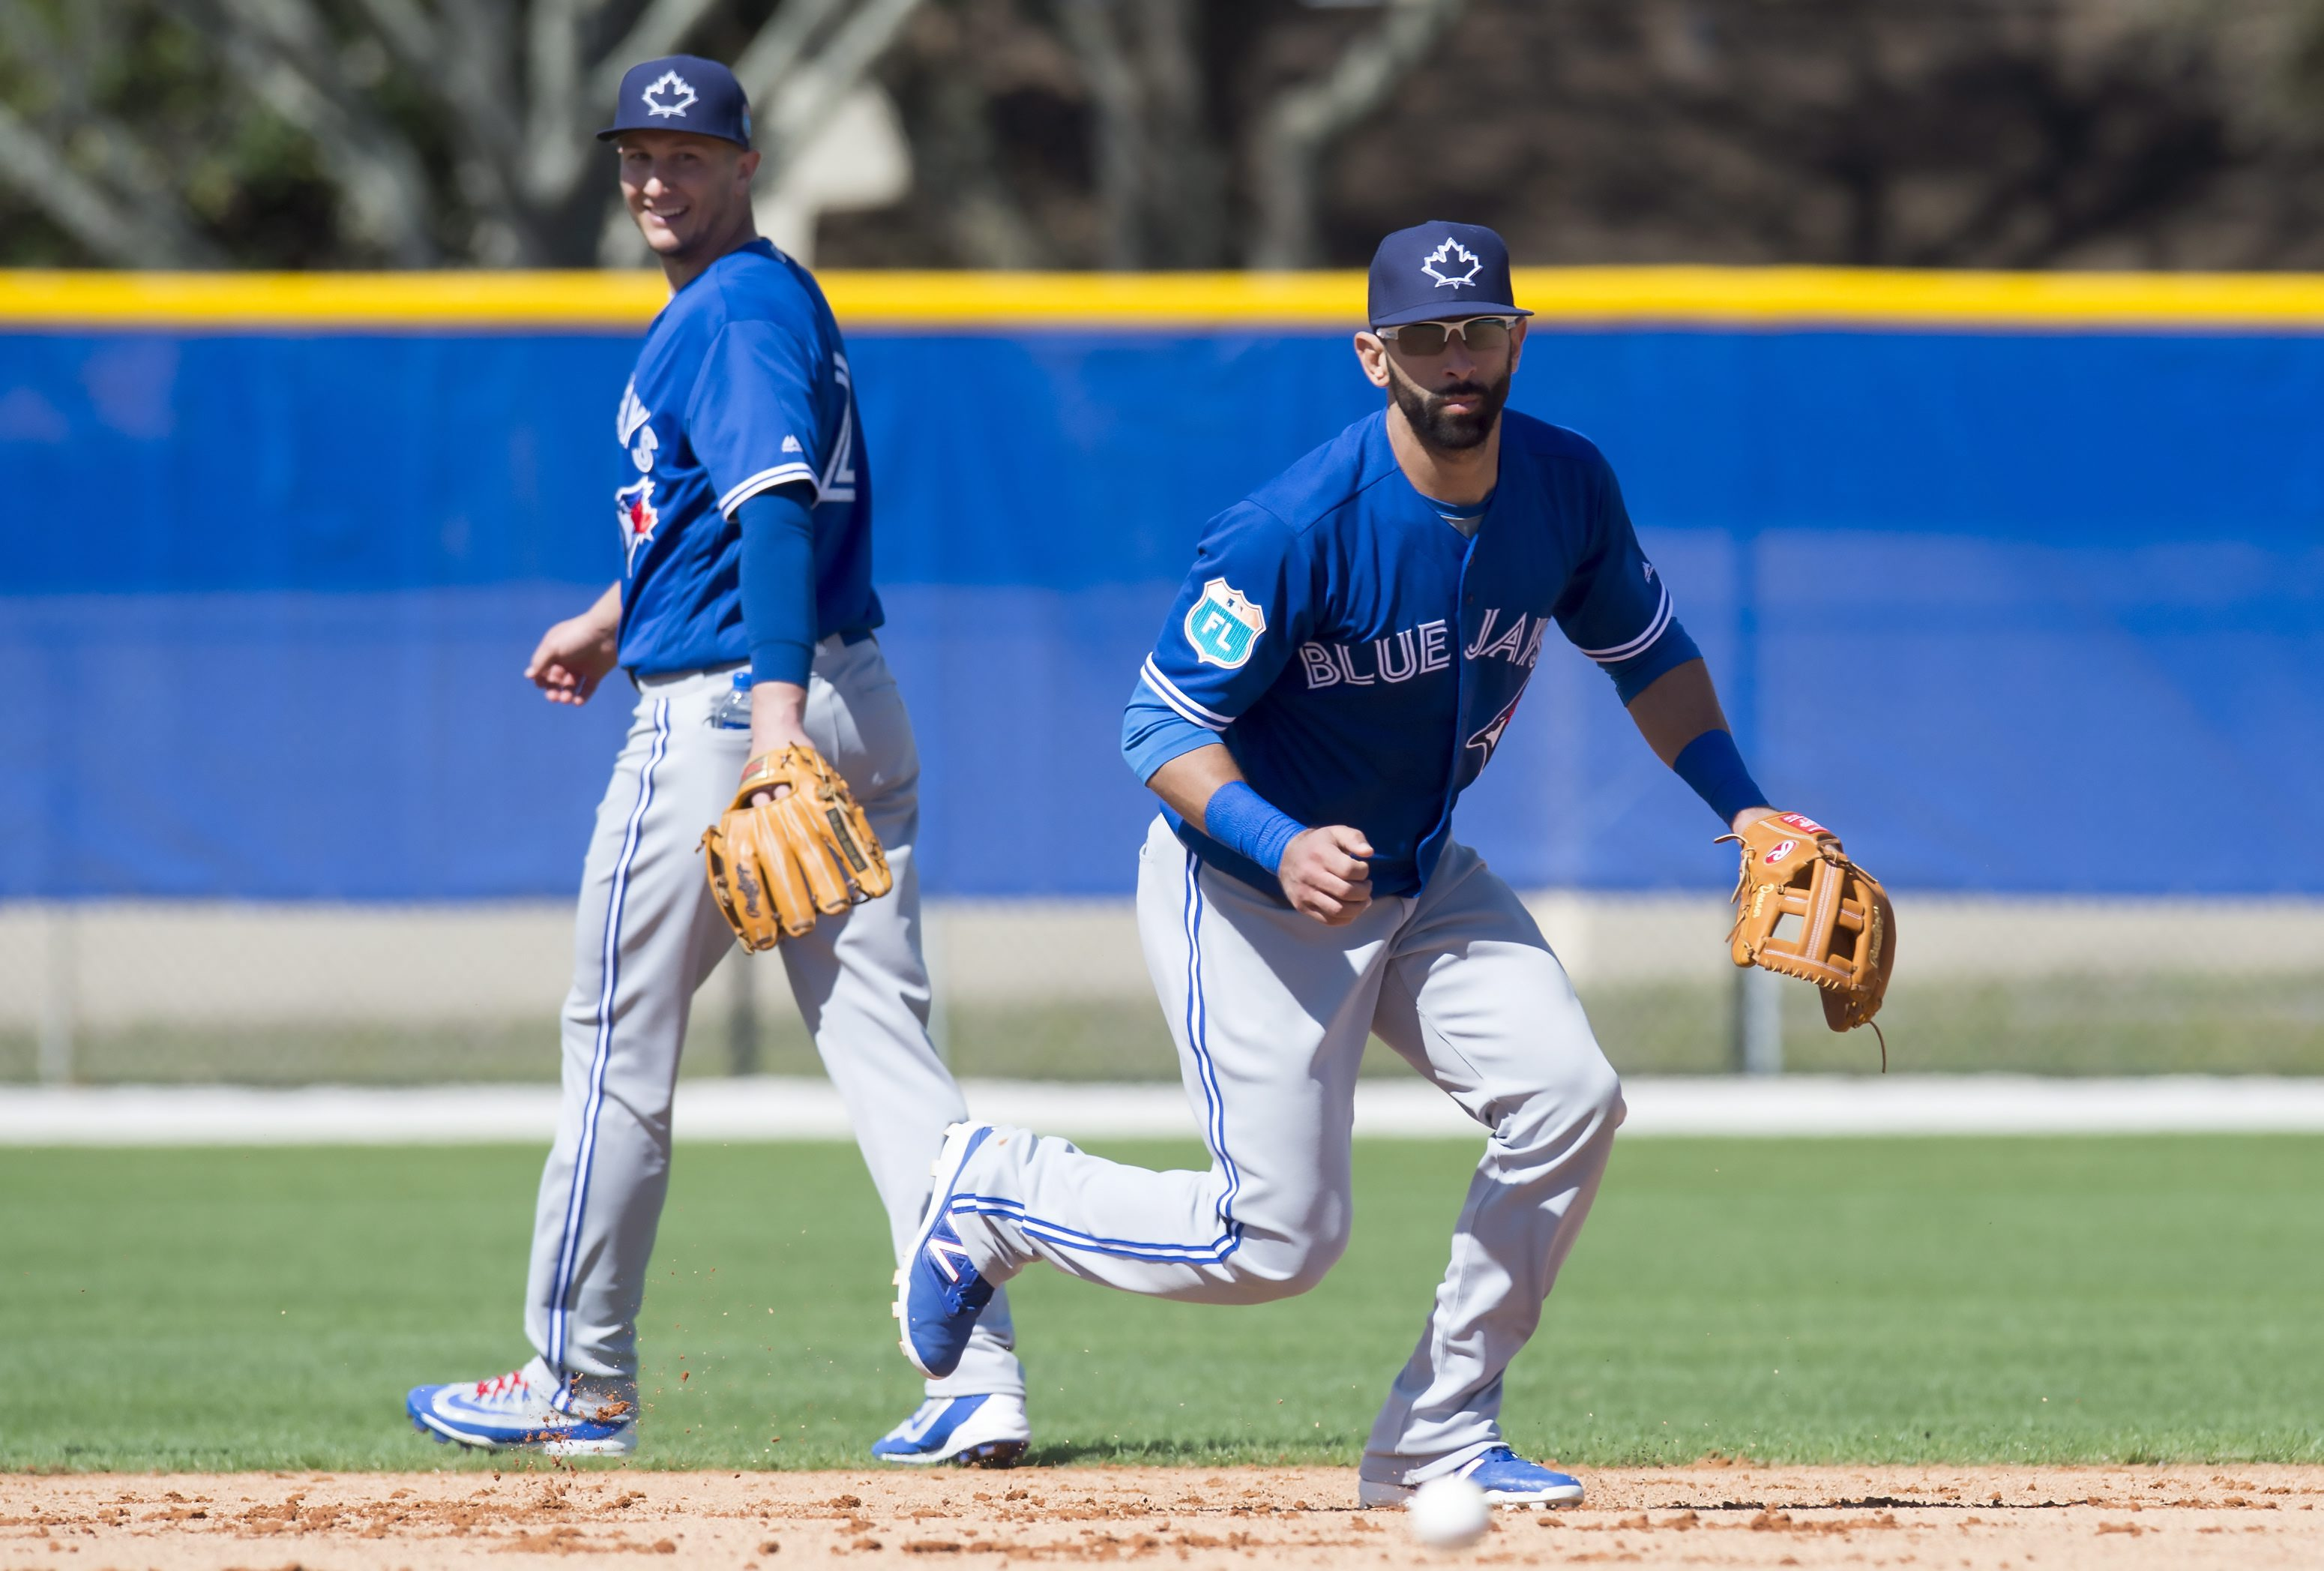 Toronto Blue Jays outfielder Jose Bautista takes ground balls at shortstop as shortstop Troy Tulowitzki, left, smiles and watches during the first official spring training baseball workout in Dunedin, Fla., Monday Feb. 22, 2016. (Frank Gunn/The Canadian P